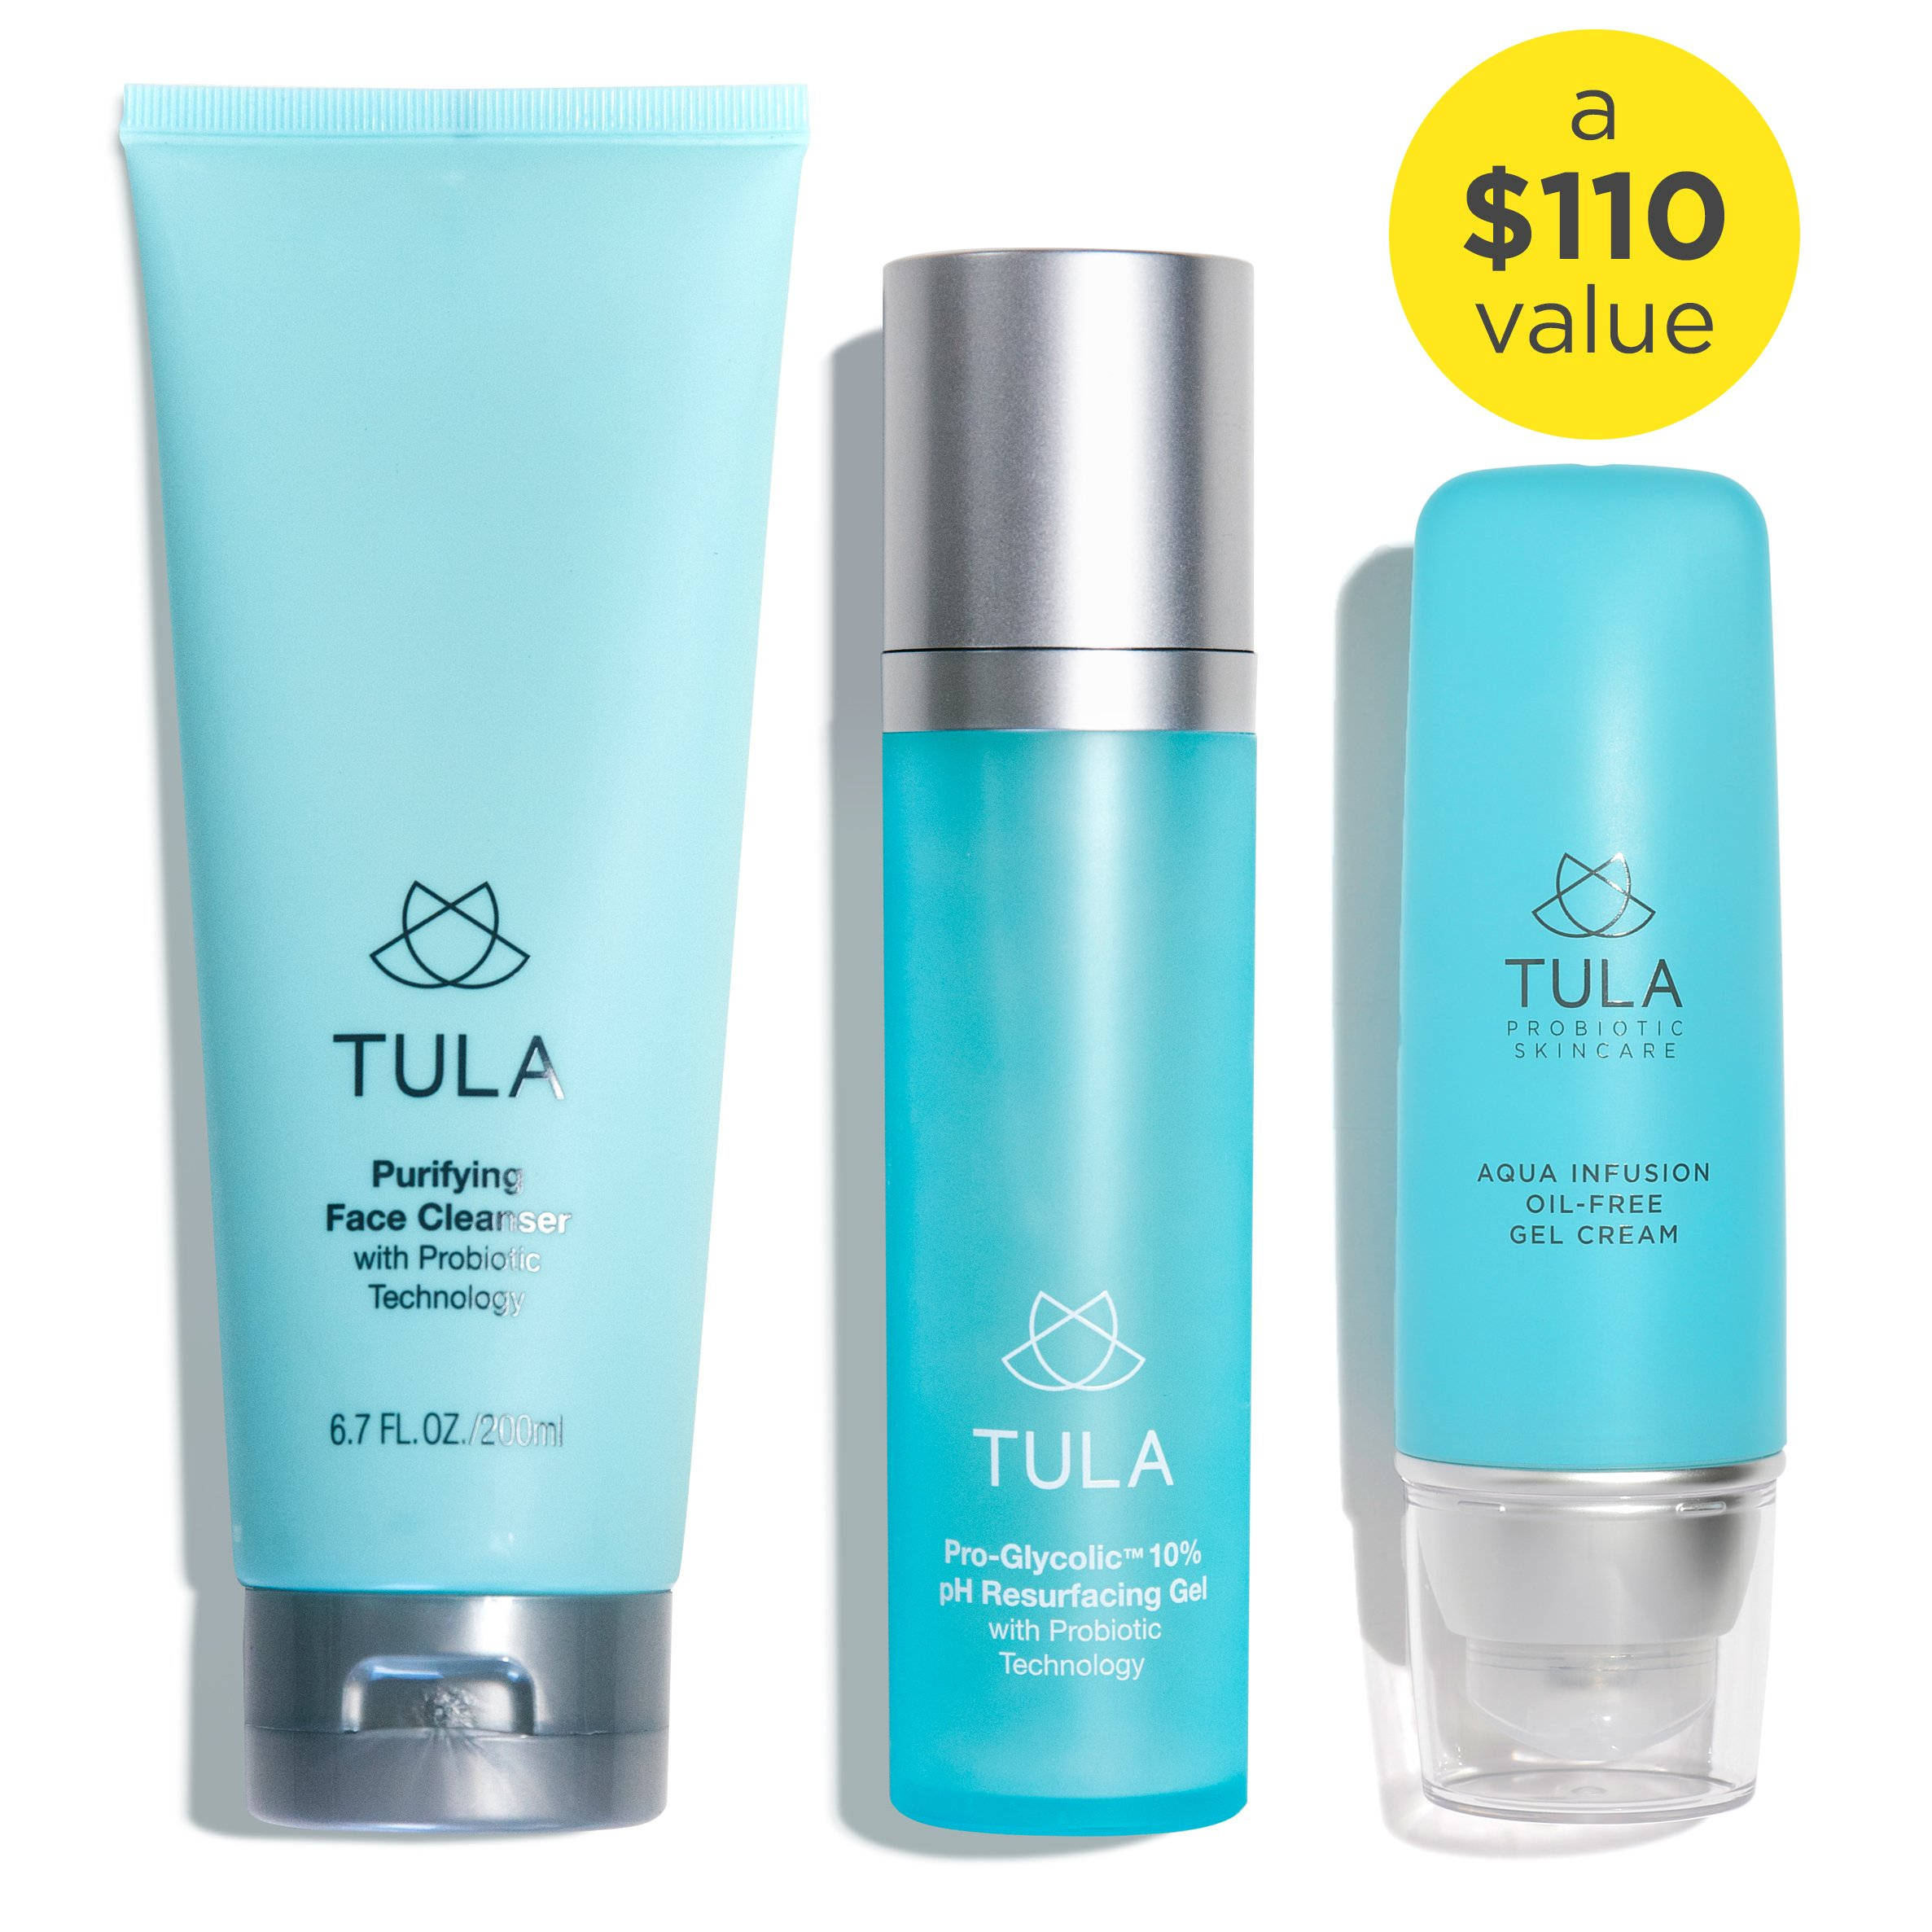 TULA Probiotic Skin Care 3-Step Hydrated Skin Bundle   Full-Size Face Wash, Weightless Water-Based Face Moisturizer, Pro-Glycolic Resurfacing Face Toner   Best for Combination and Oily Skin